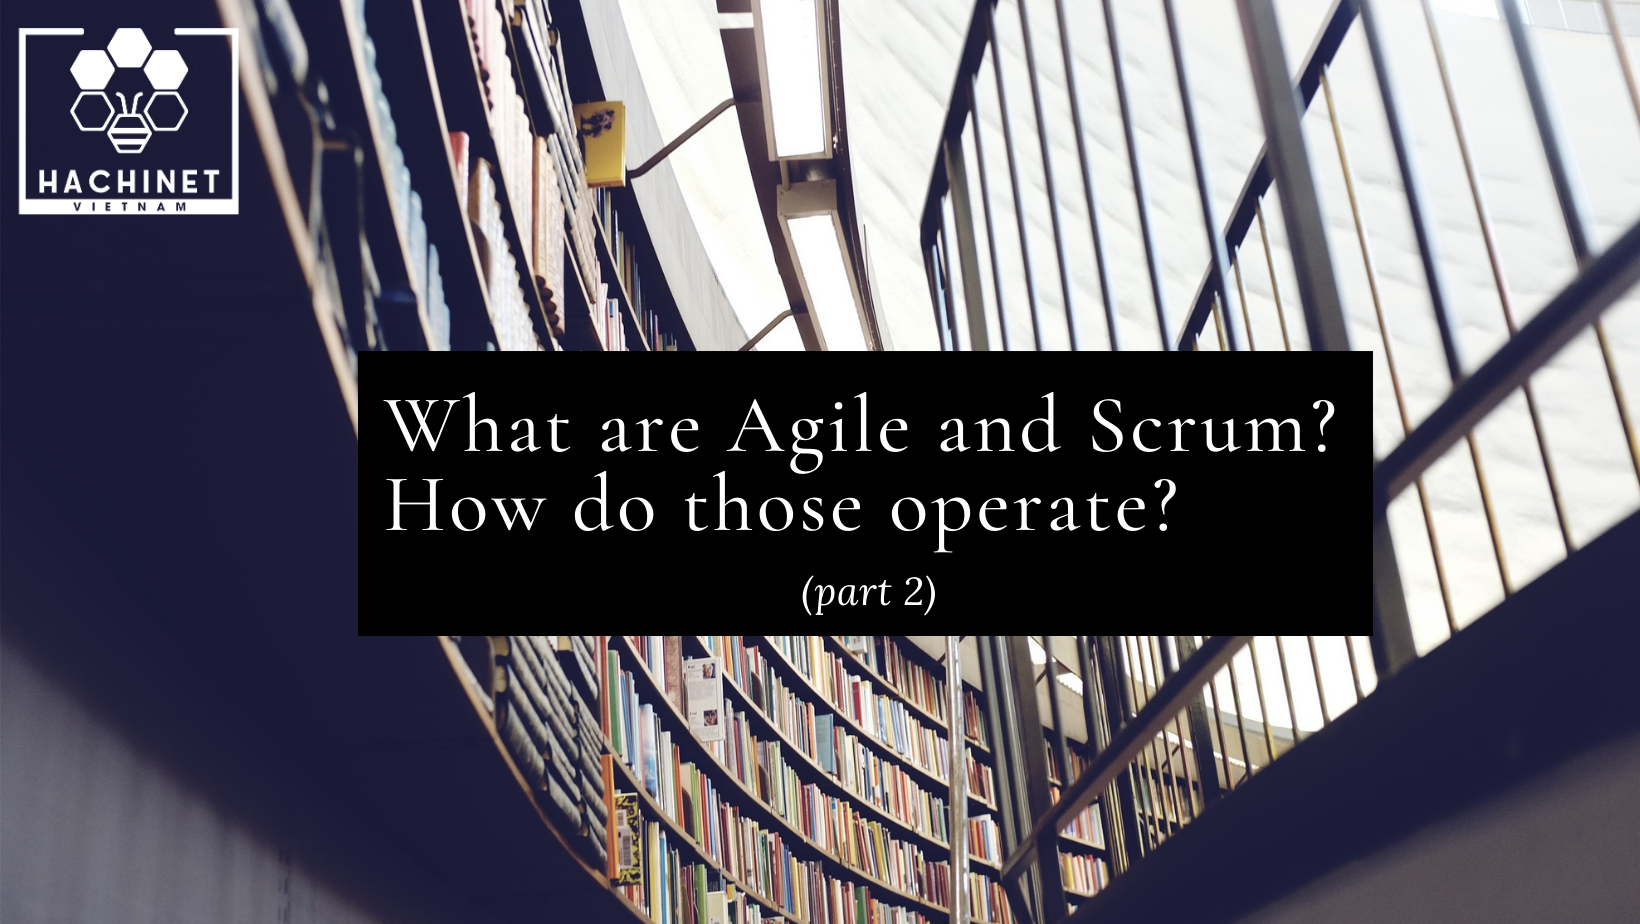 What are Agile and Scrum? How do those operate? (part 2)